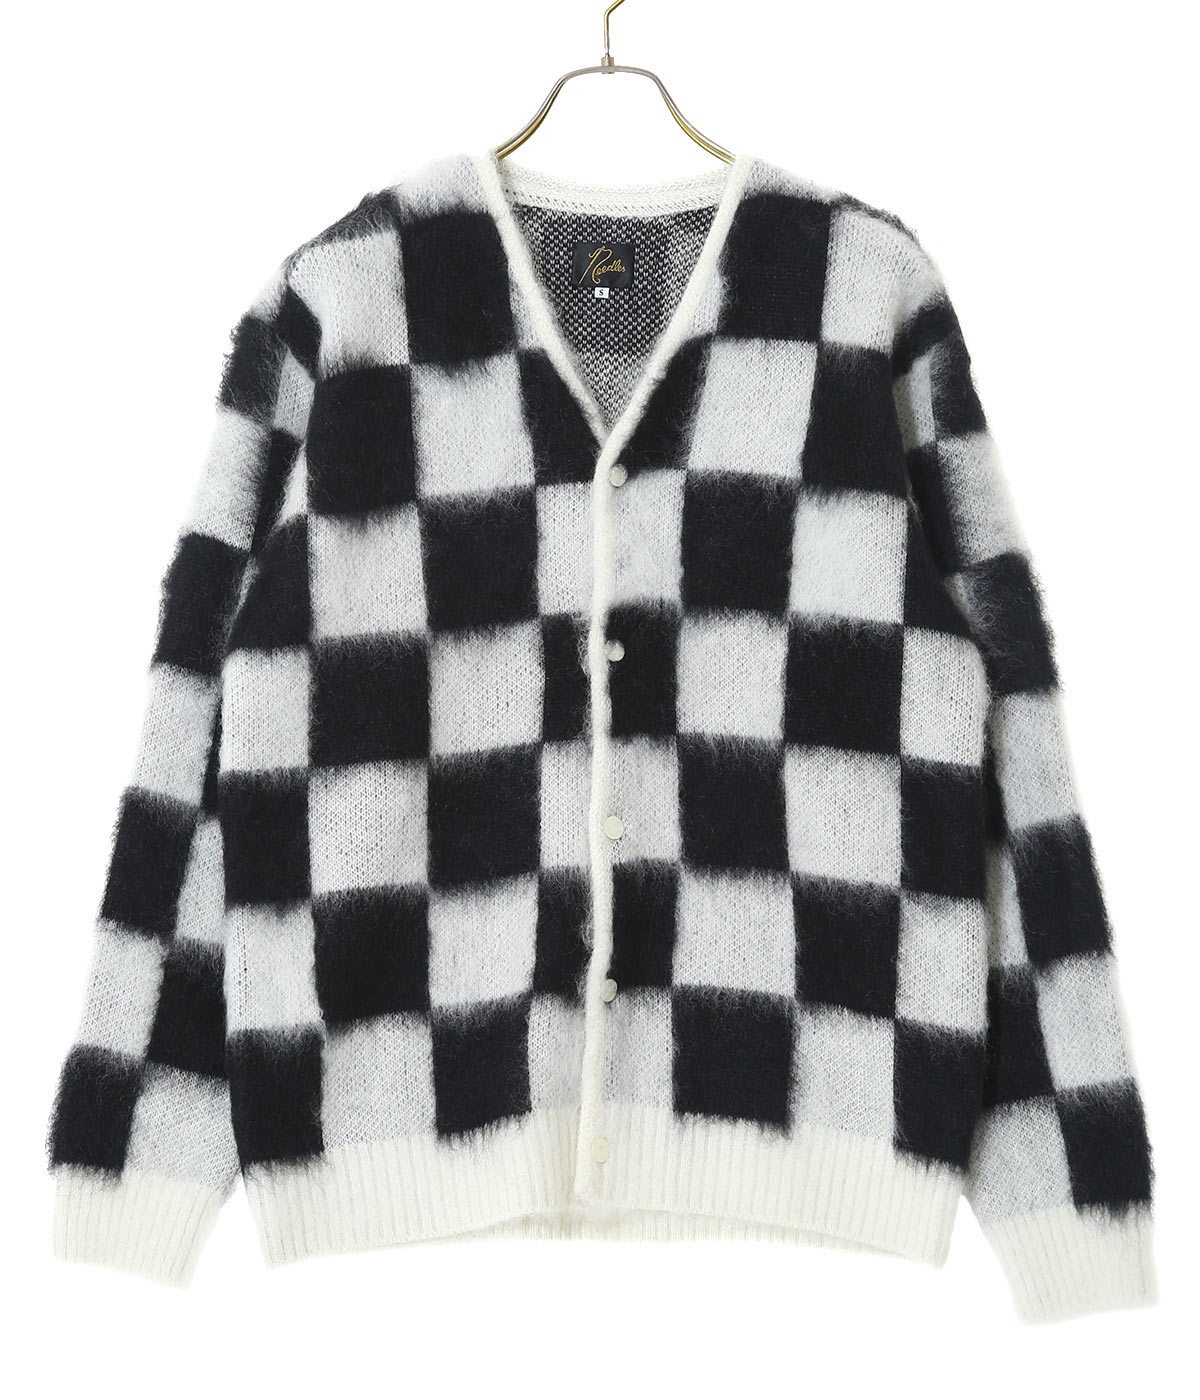 Mohair Cardigan - Checkered